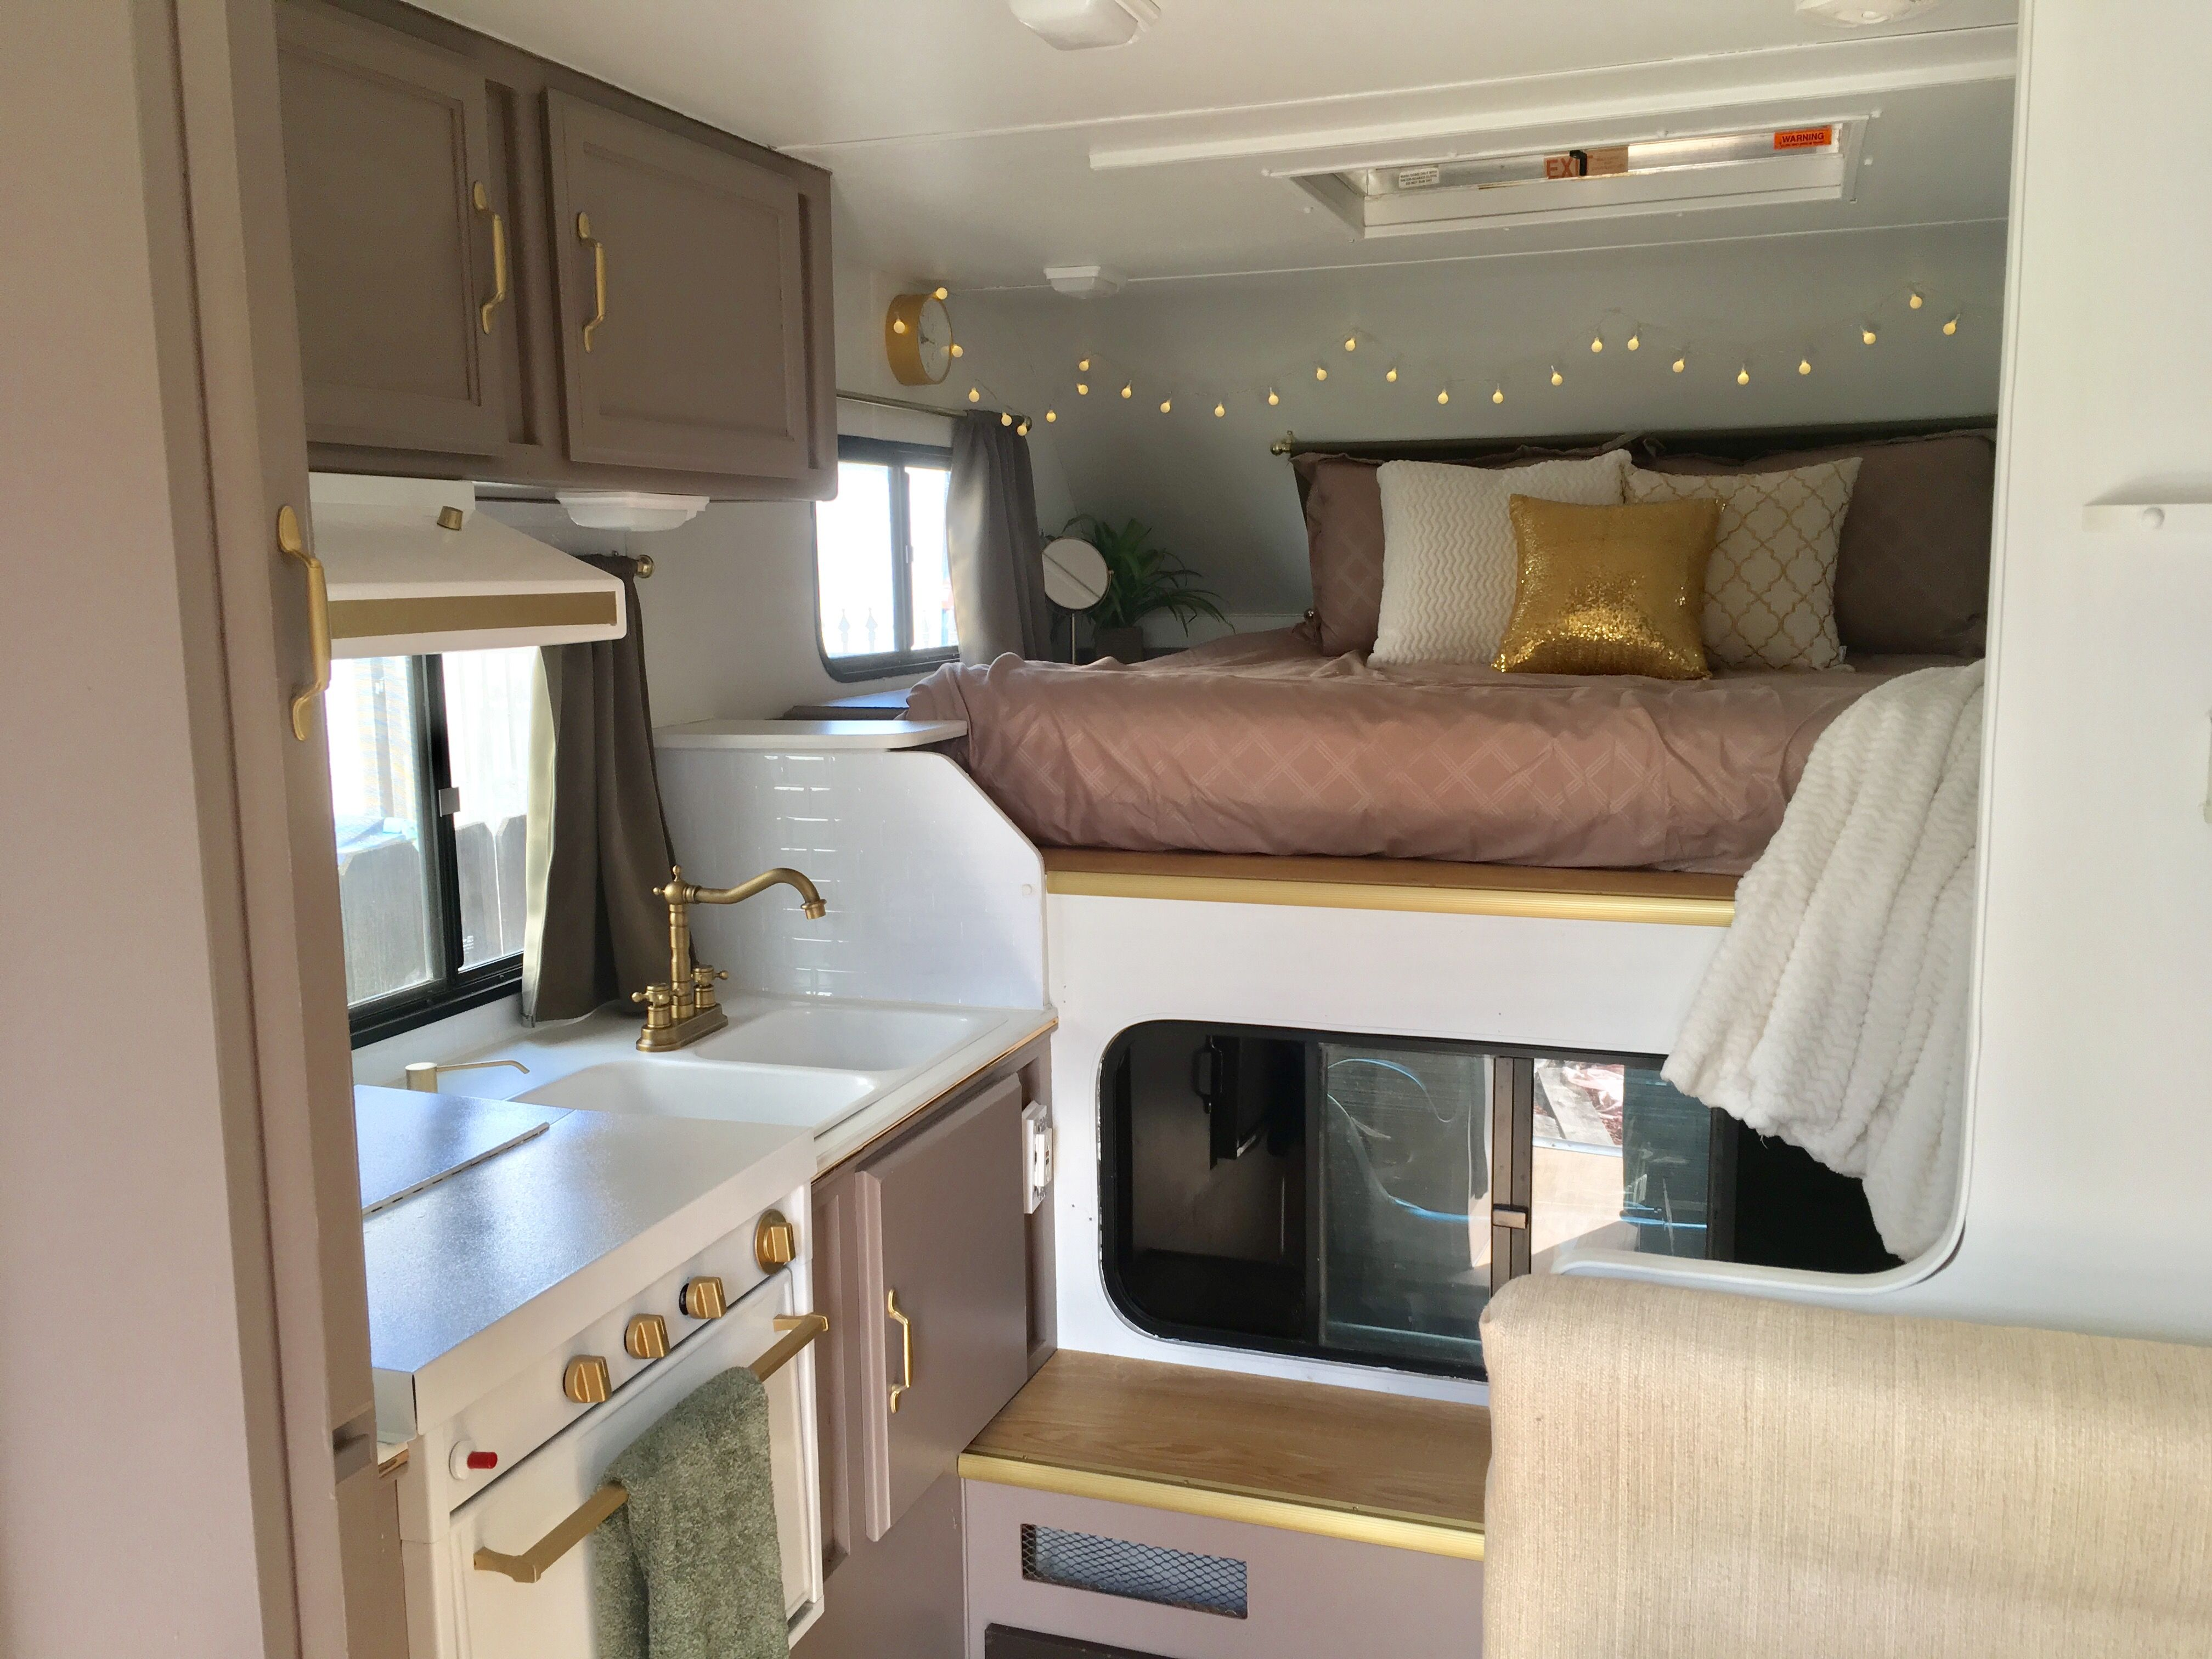 Truck camper trailer remodel before and after insta sara for Campervan kitchen ideas